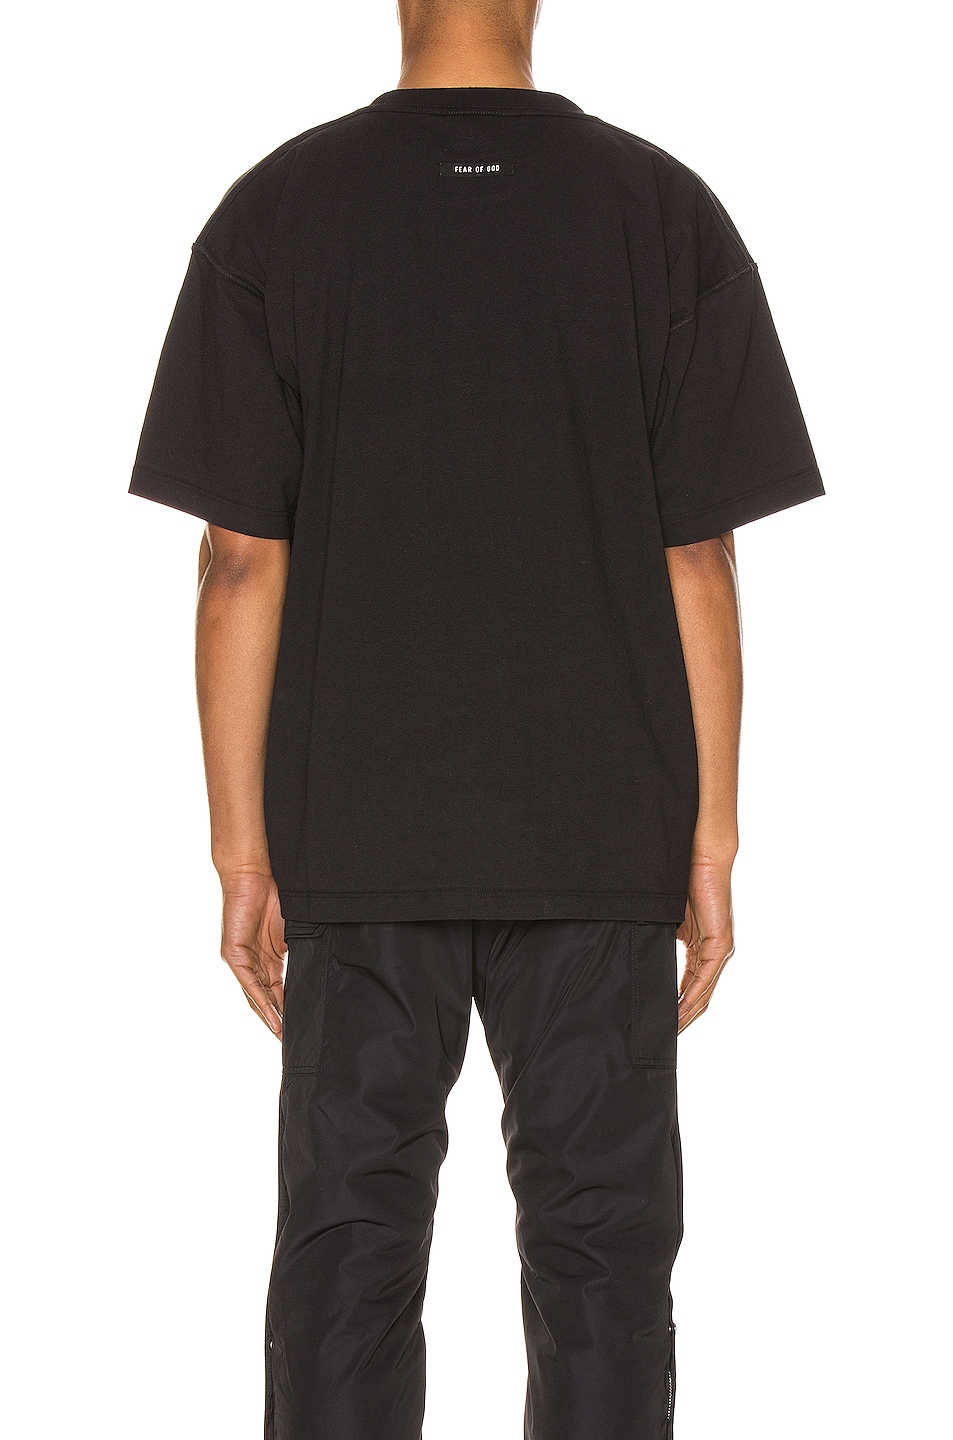 Image 3 of Fear of God Short Sleeve FG Tee in Vintage Black